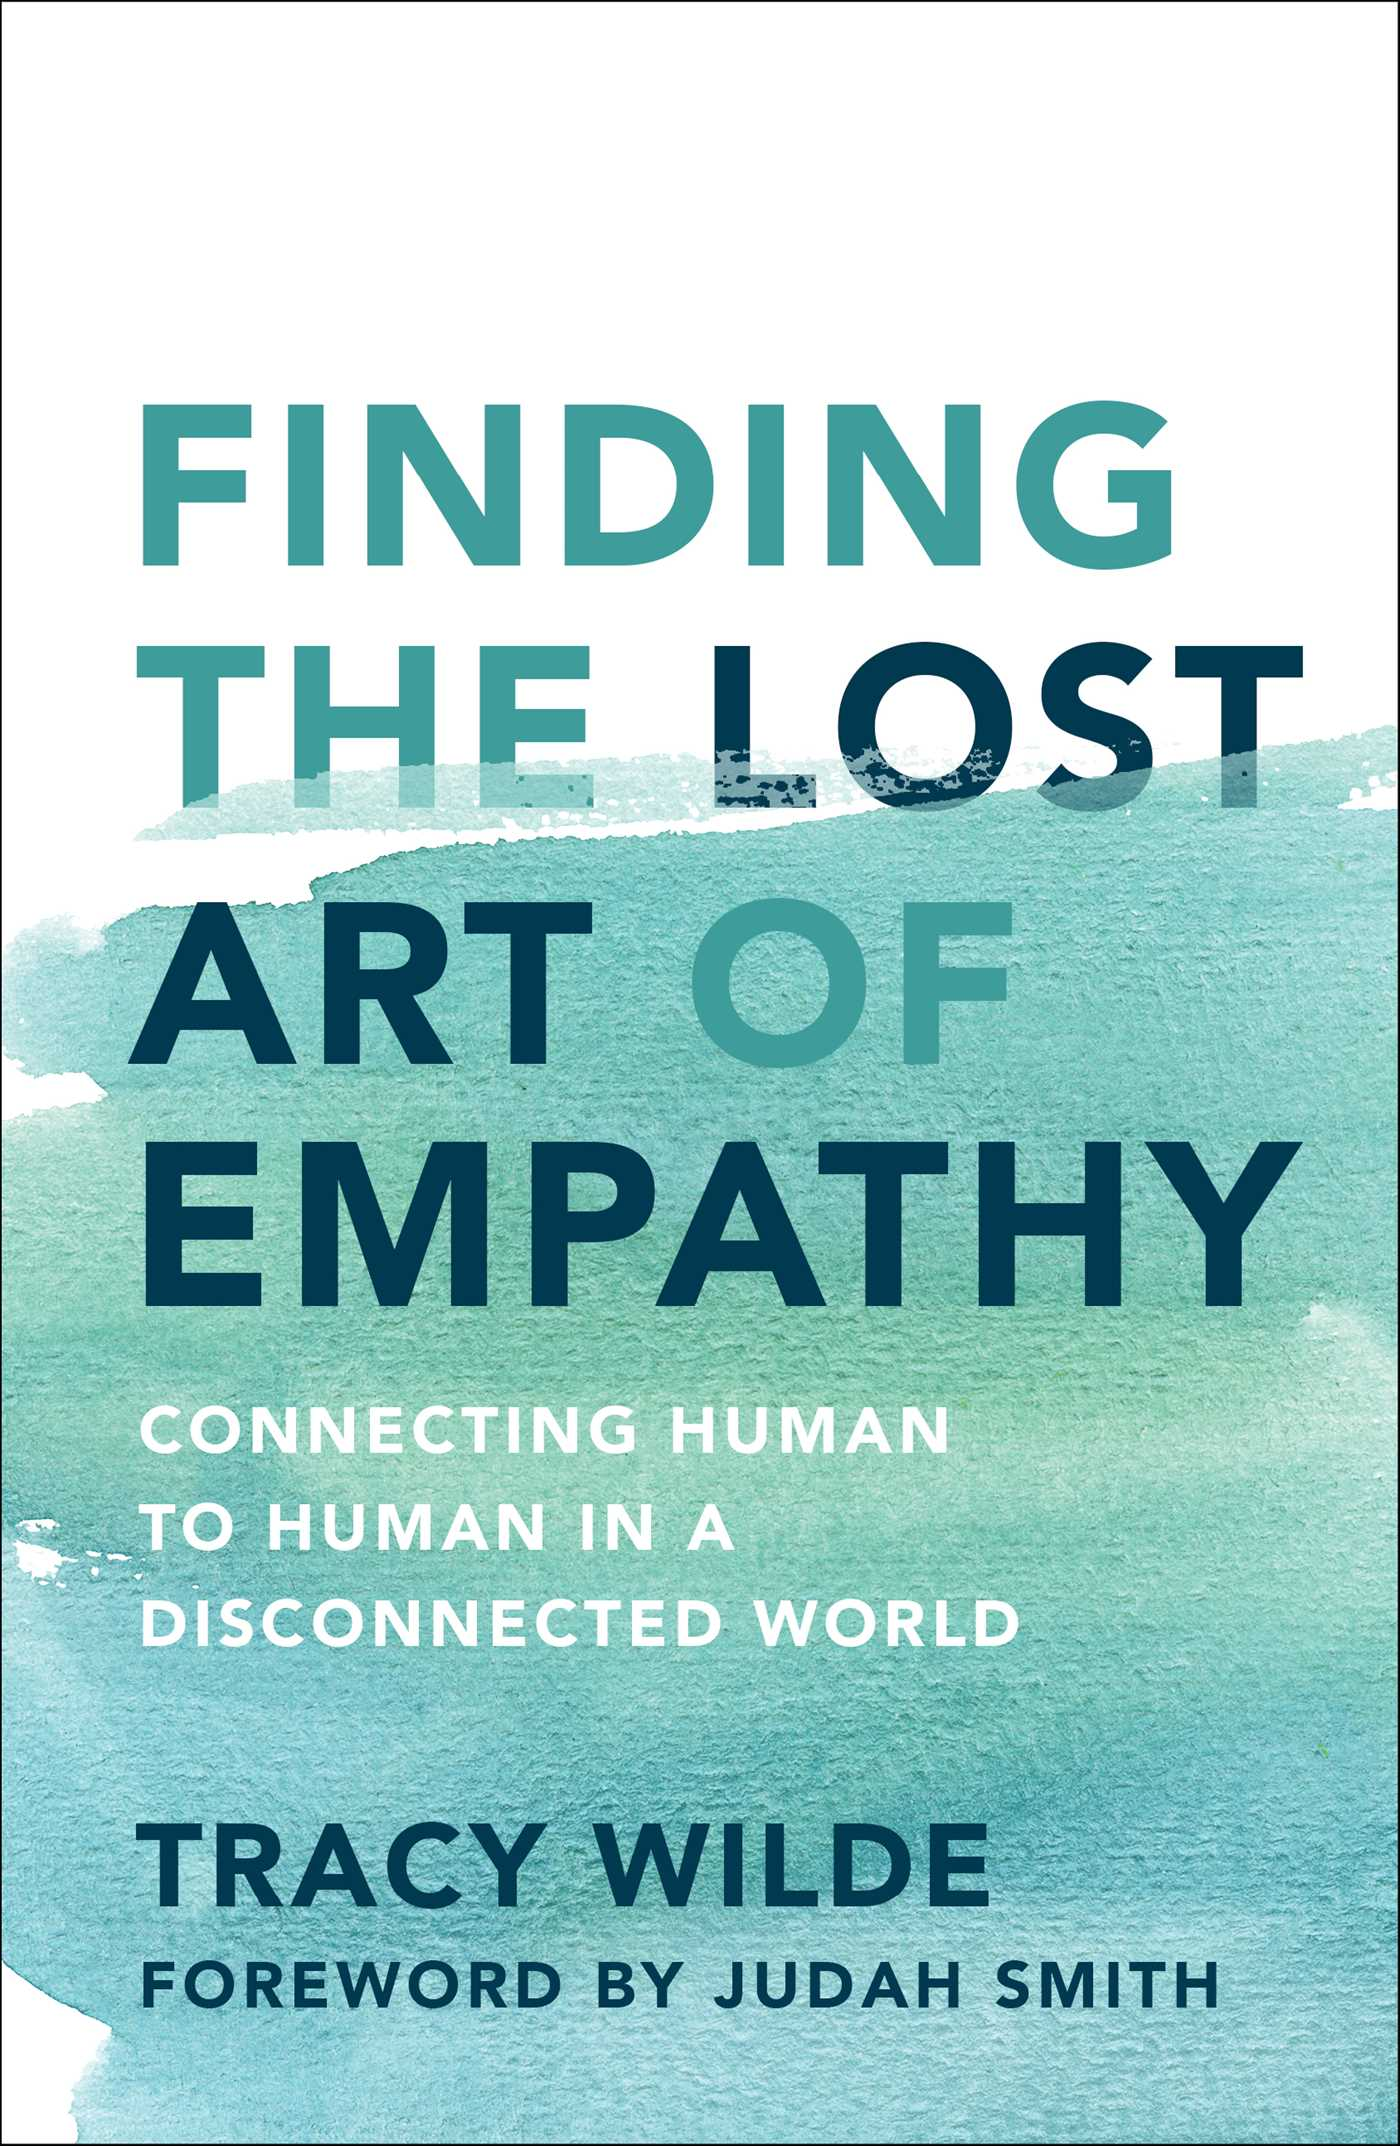 Finding the lost art of empathy 9781501156298 hr